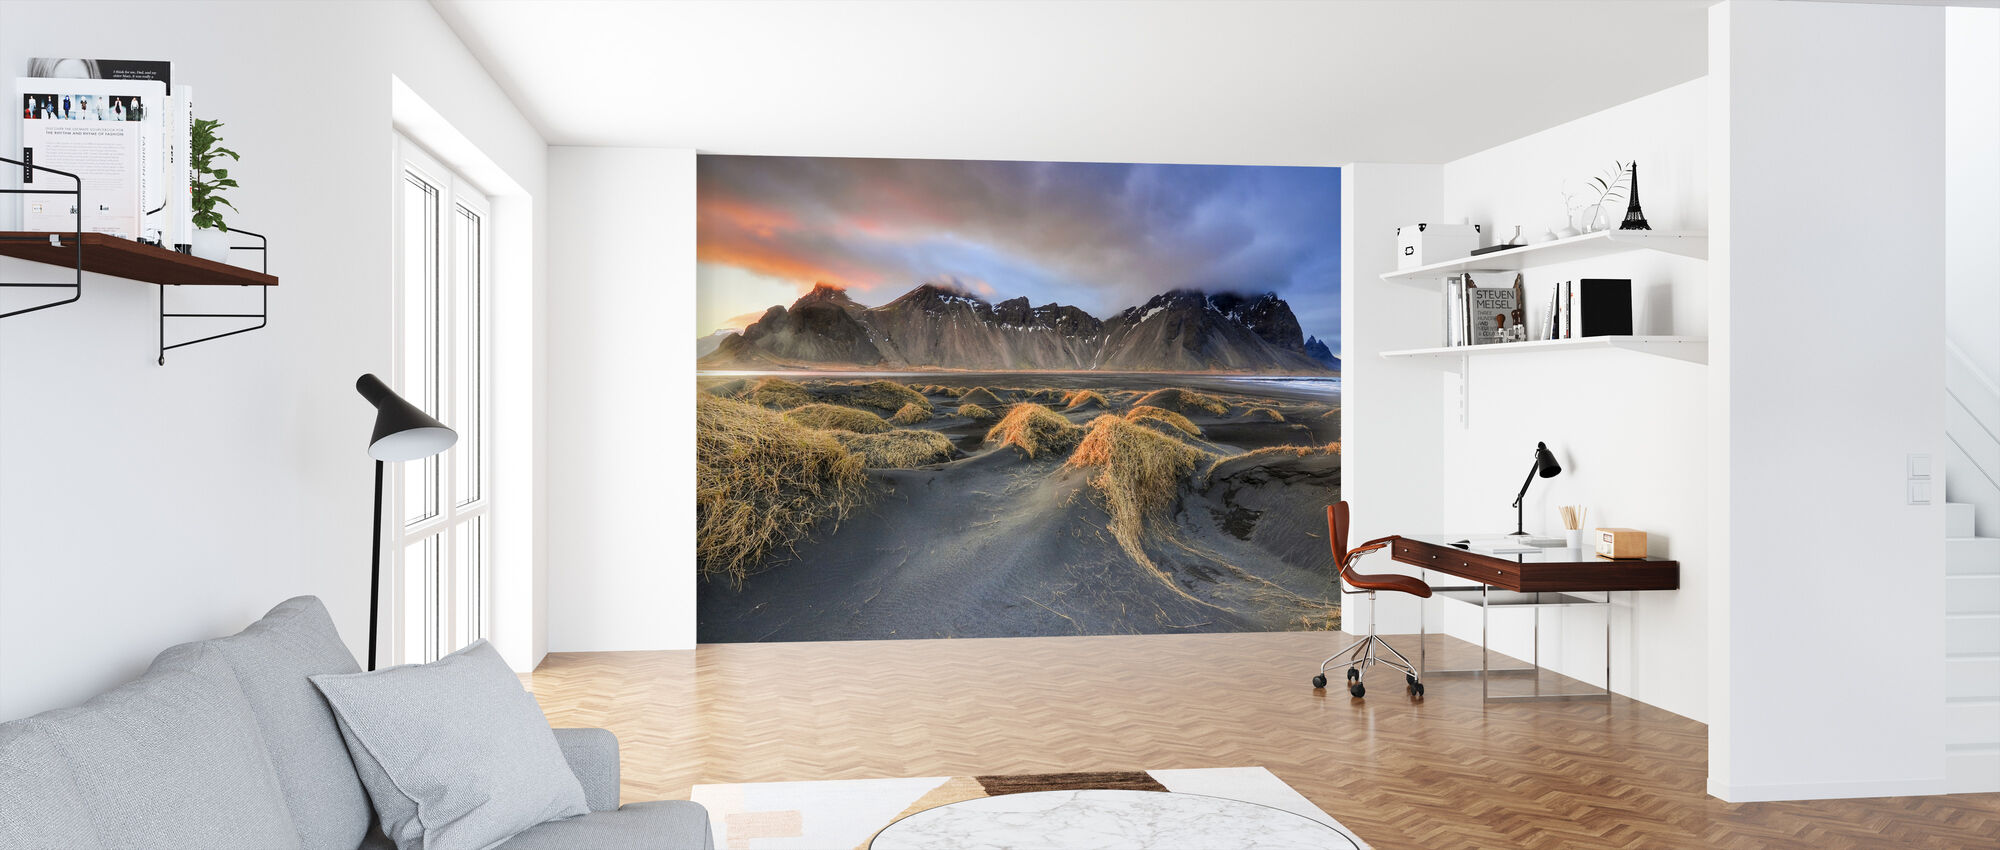 Vestrahorn - Wallpaper - Office